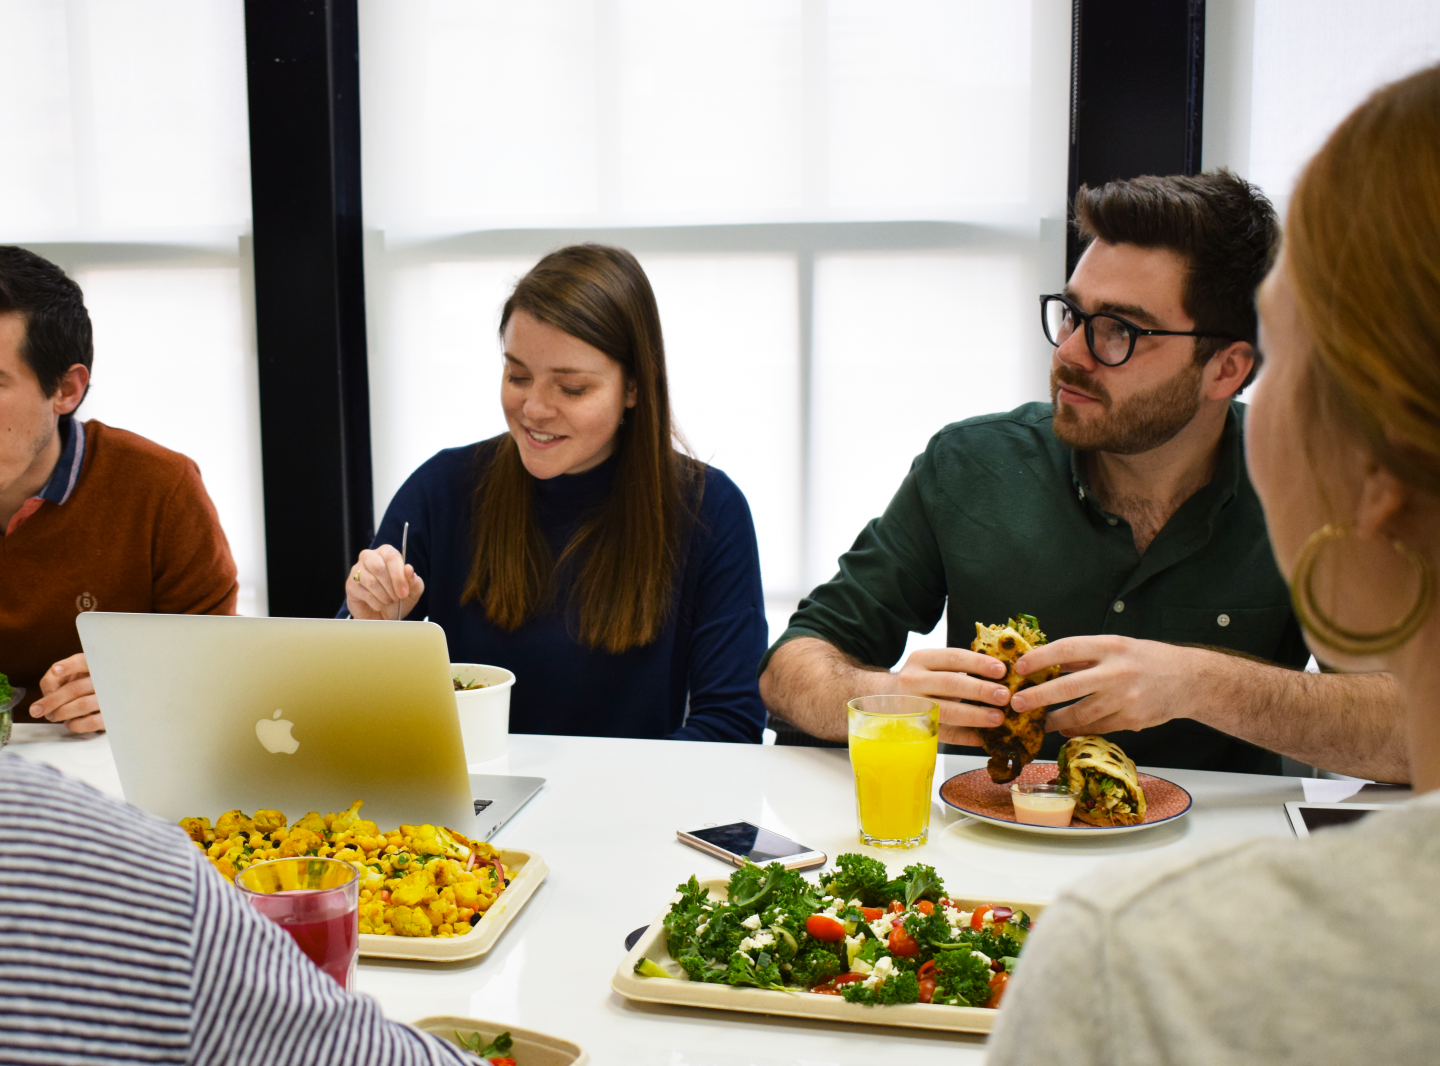 What's the culture like at Feedr?